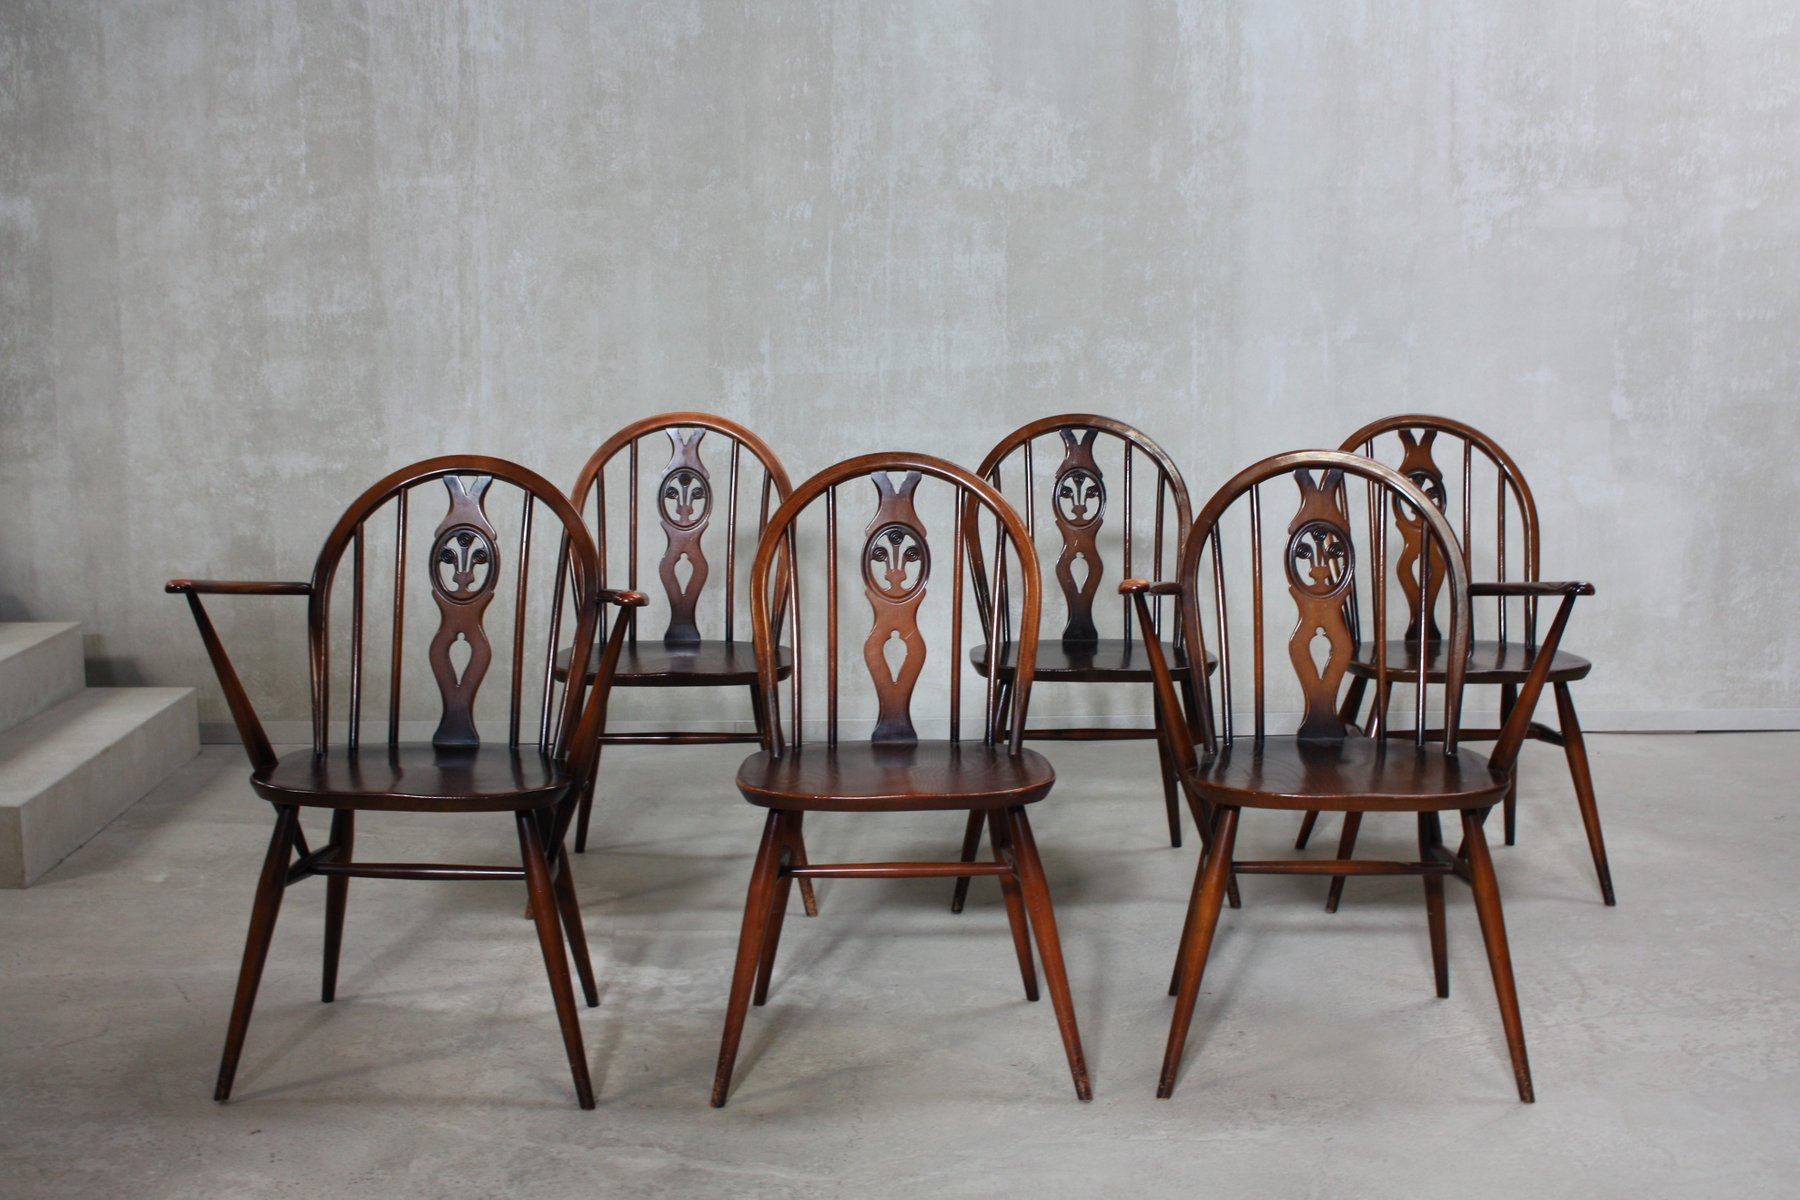 a windsor dining chairs by lucian ercolani for ercol s setof .   a windsor dining chairs by lucian ercolani for ercol